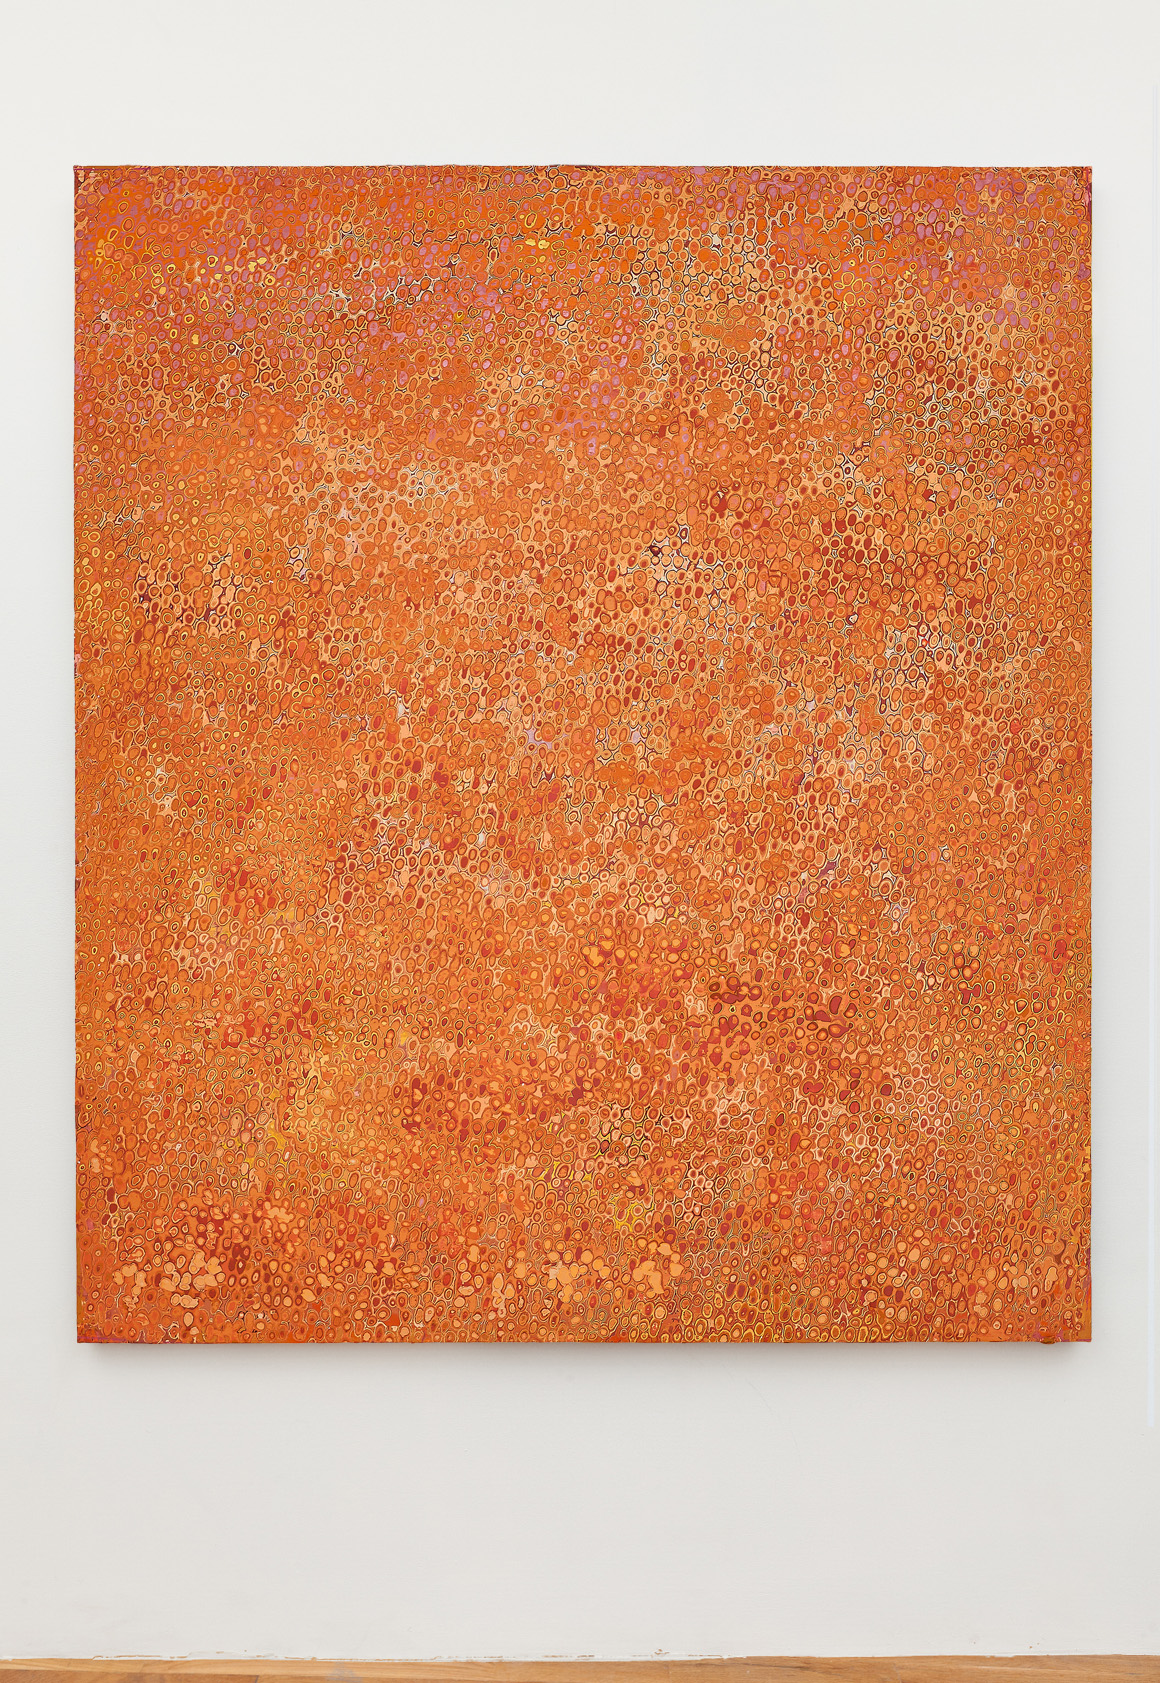 """<p><span class=""""name"""">Andrew Jensdotter</span><br><em>Orange 70</em><span class='media'>Carved latex on canvas</span>80 x 68 in (203.2 x 172.7 cm)<br>2018<br><a class='inquire' href='mailto:info@gildargallery.com?subject=Artwork Inquiry AJEN0054&body=I am interested in finding out more about Orange 70 by Andrew Jensdotter'>Inquire</a></p>"""